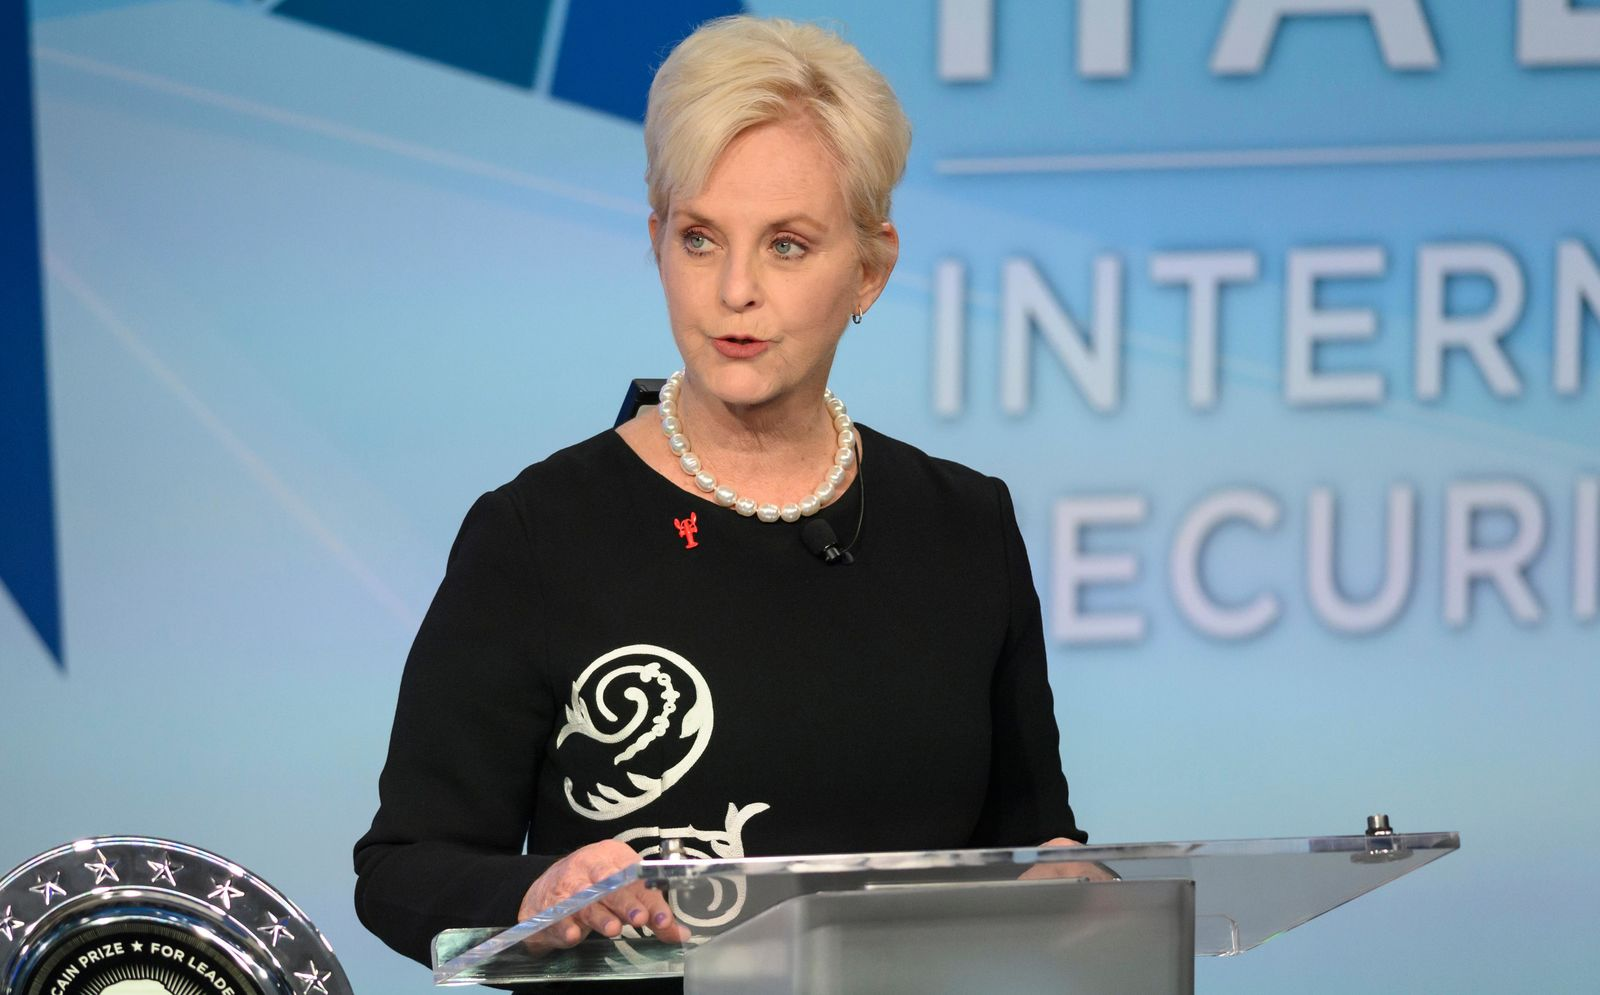 FILE - In this Nov. 17, 2018 file photo, Cindy McCain pauses while presenting the inaugural John McCain Prize for Leadership in Public Service to the People of the island of Lesbos, Greece at the Halifax International Security Forum in Halifax, Canada. (Darren Calabrese /The Canadian Press via AP)